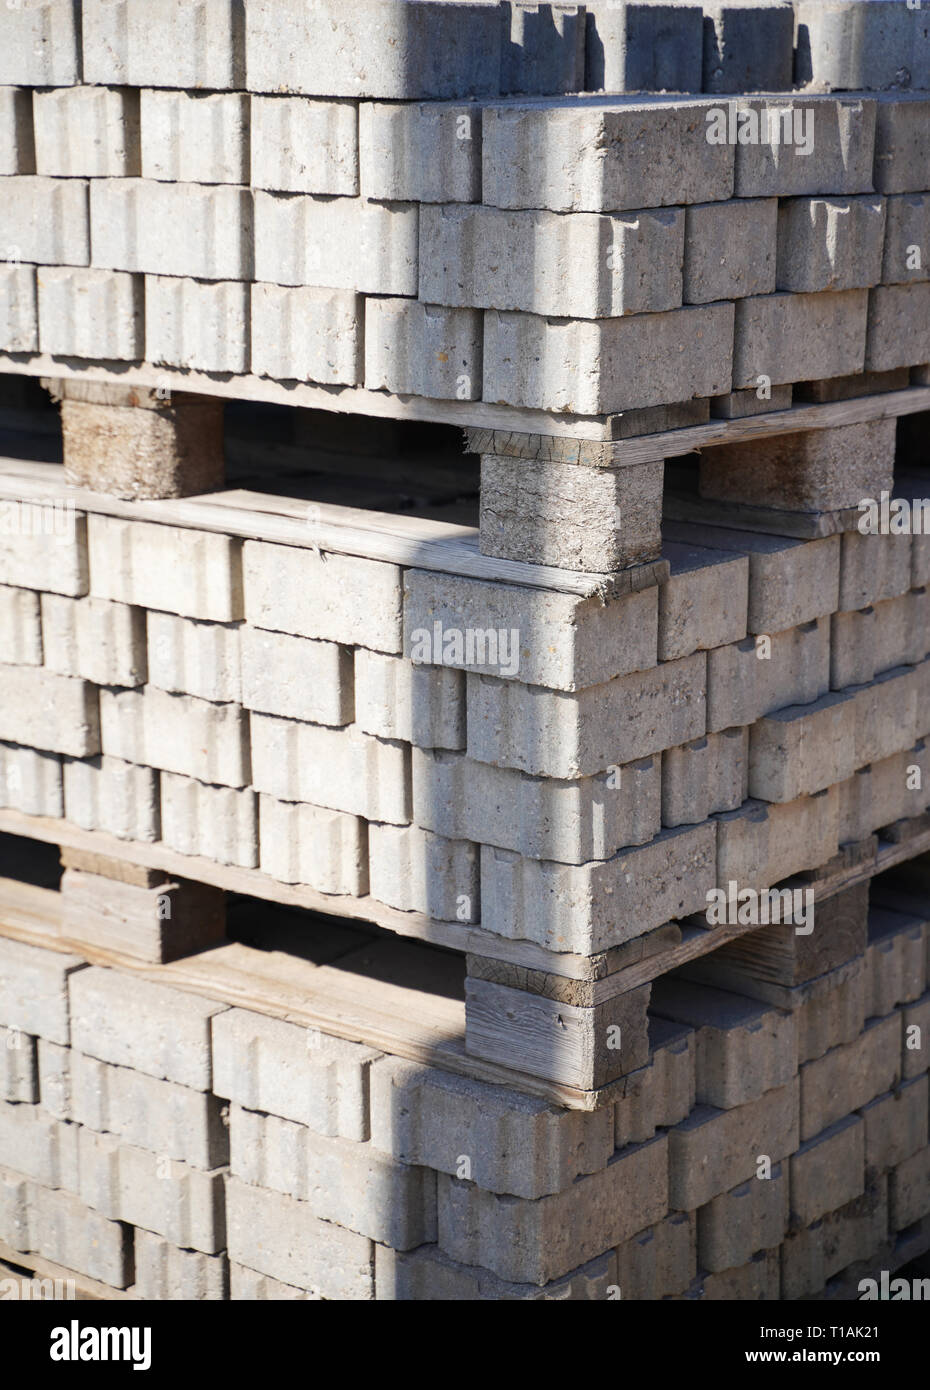 Stone building material stacked on a pallet - Stock Image